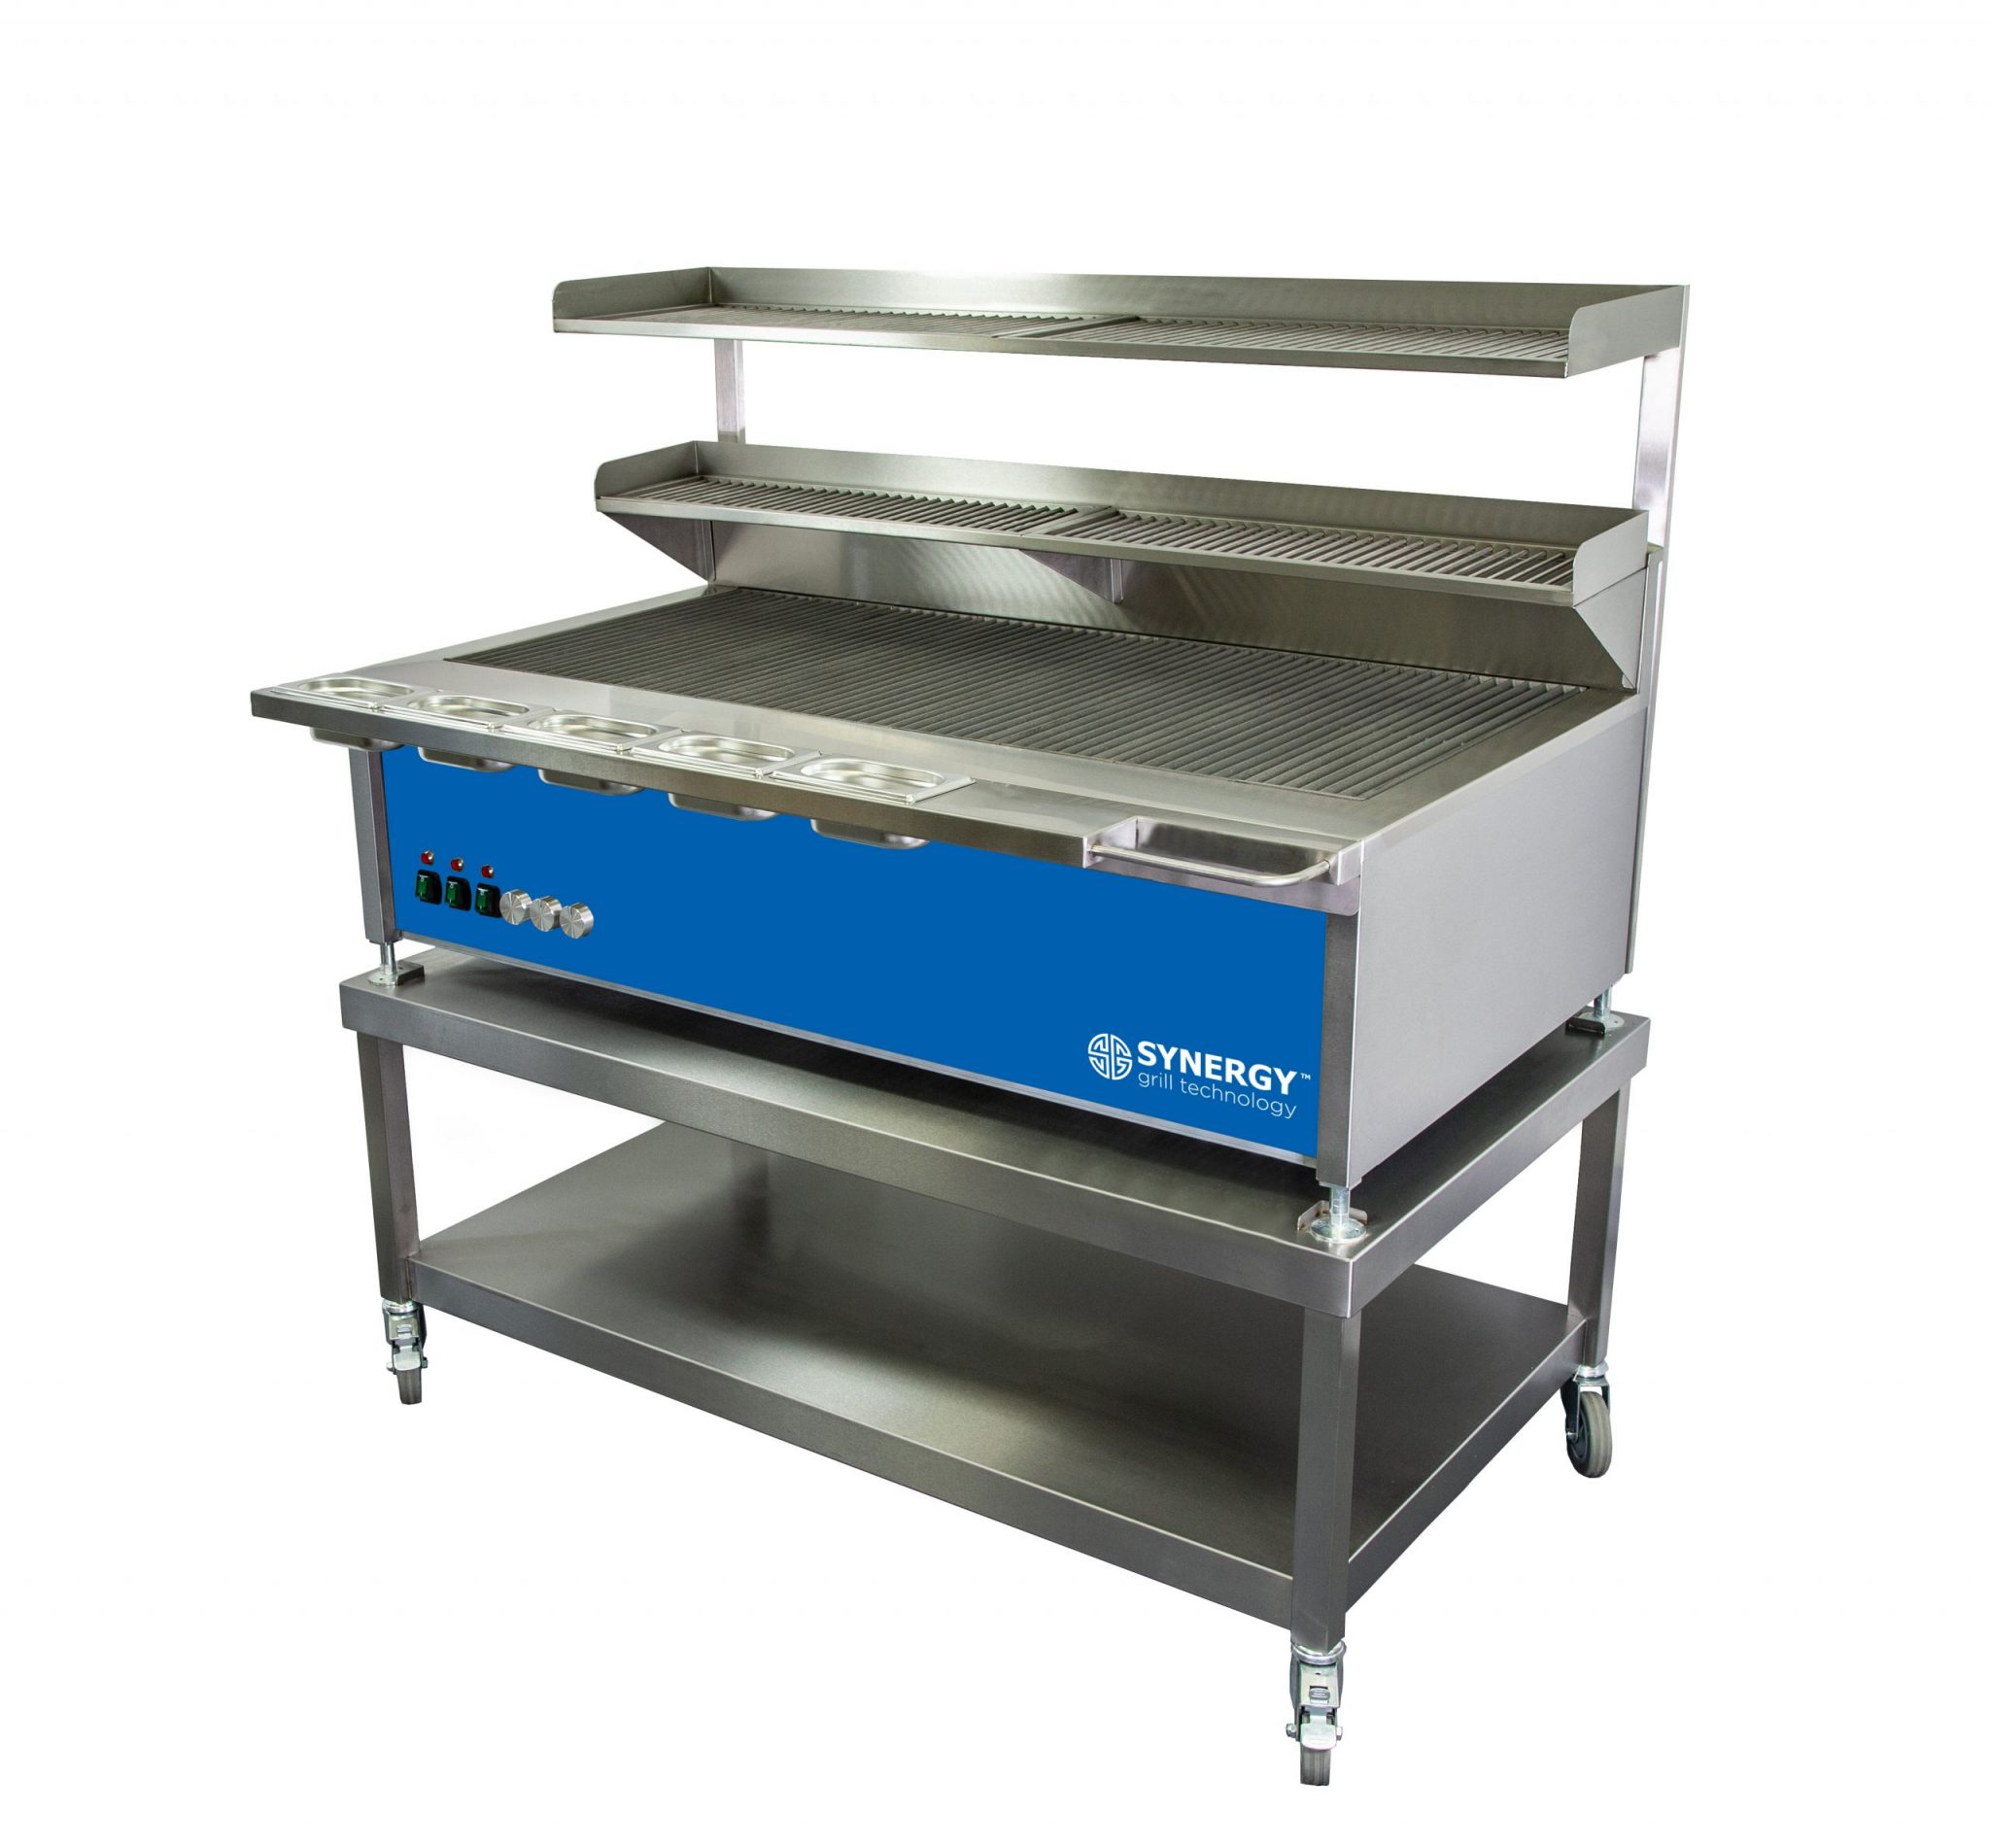 Synergy Grill Trilogy ST1300 Blue with Mobile Table